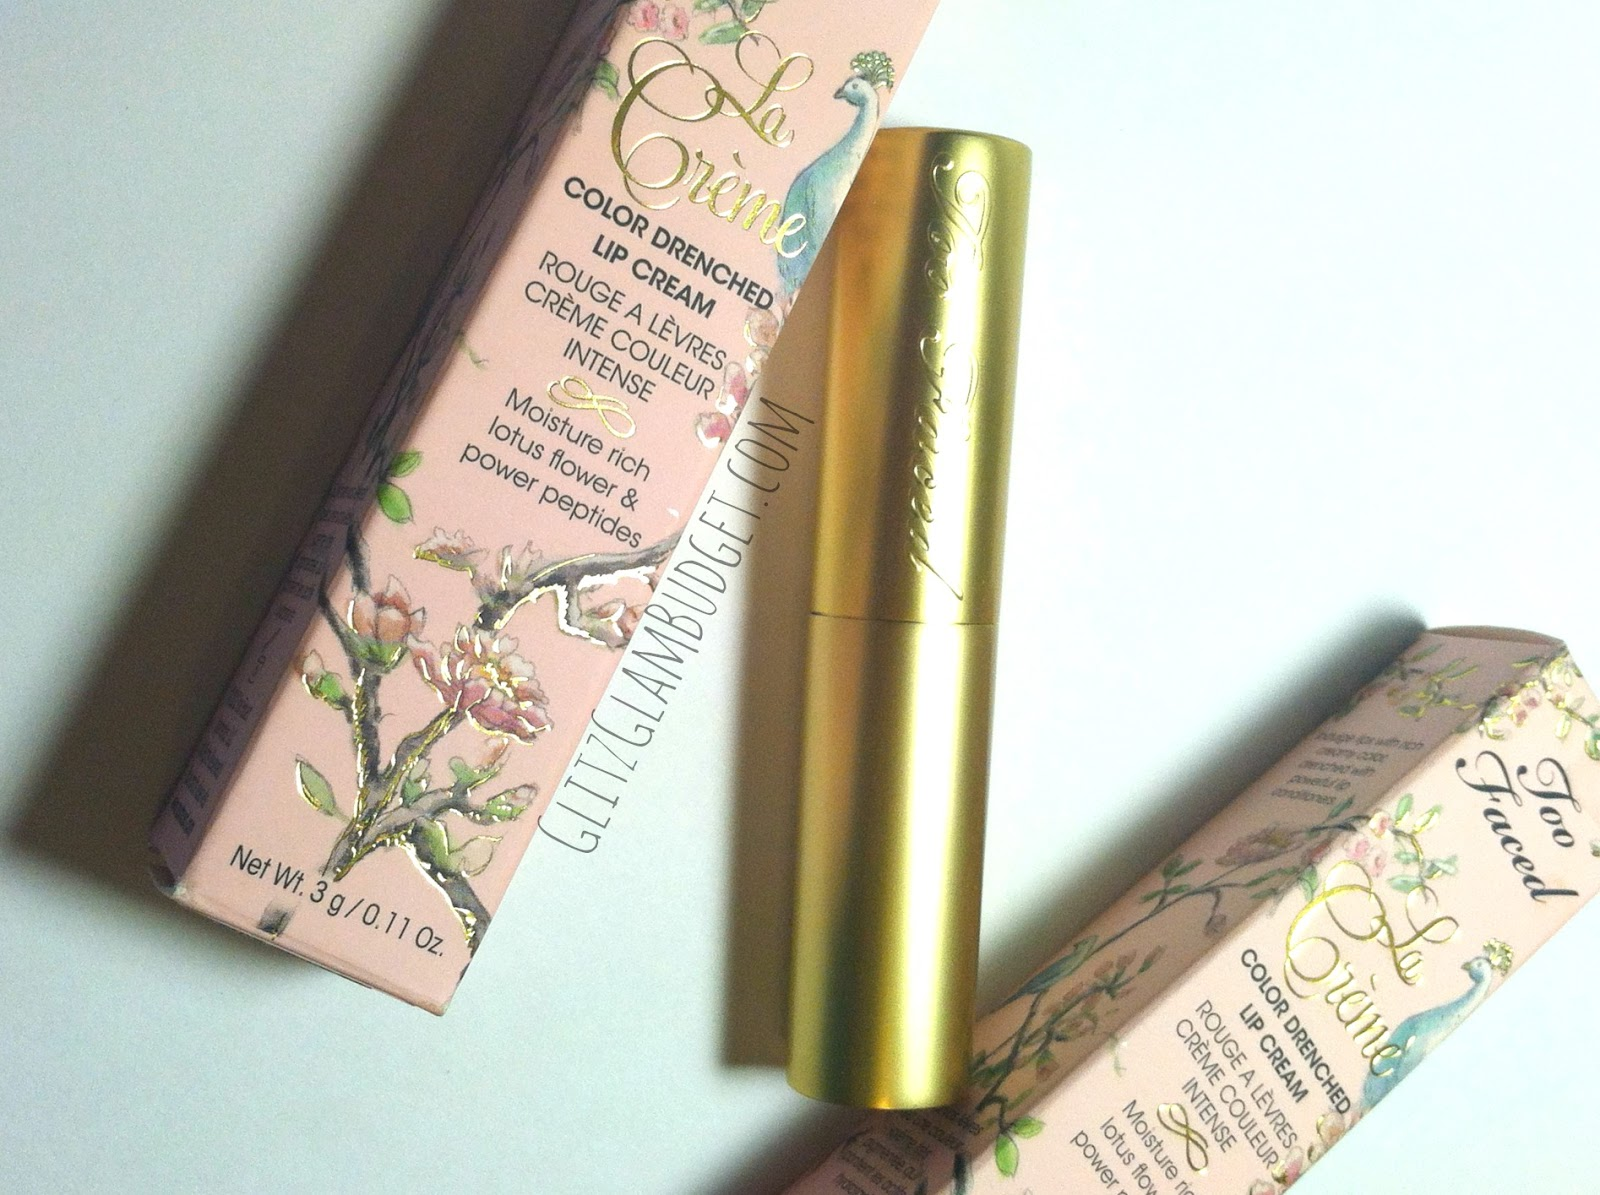 Too Faced La Creme Color Drenched Lipstick Packaging